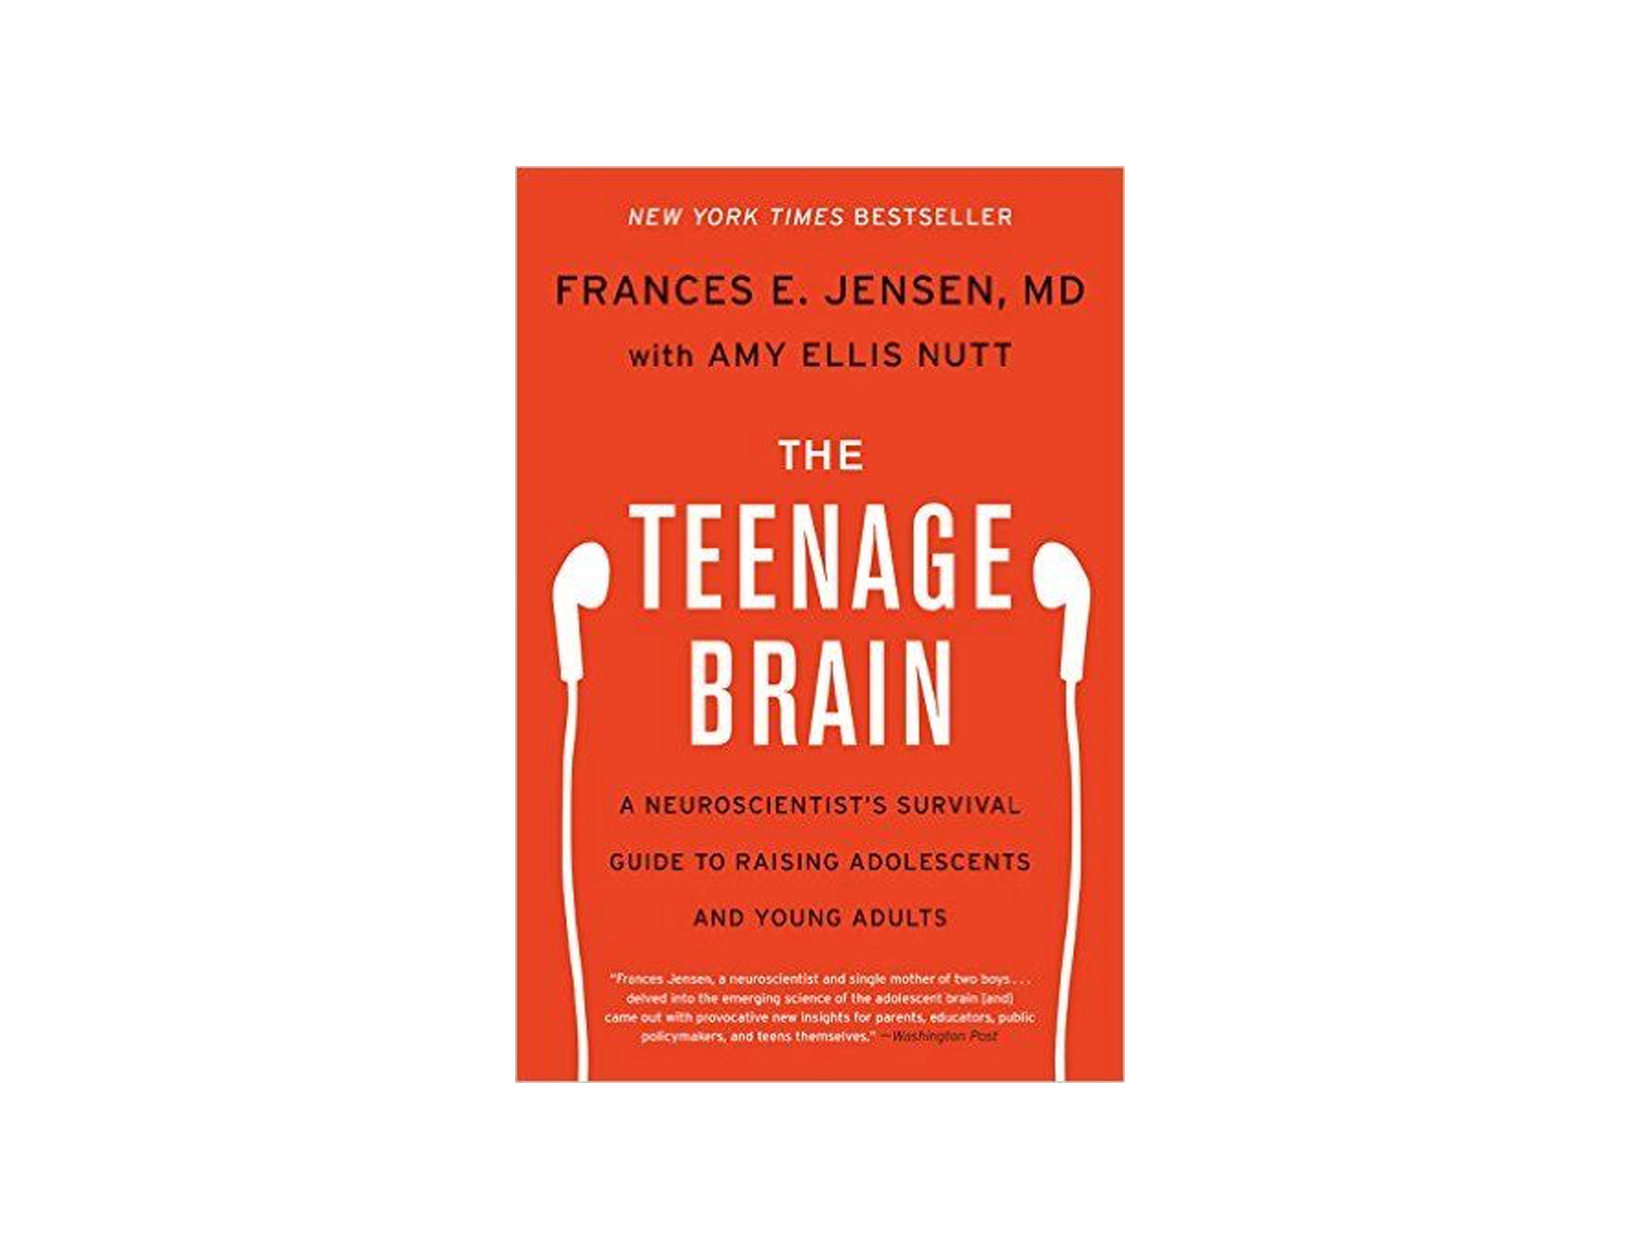 The Teenage Brain by Frances E. Jensen with Amy Ellis Nutt